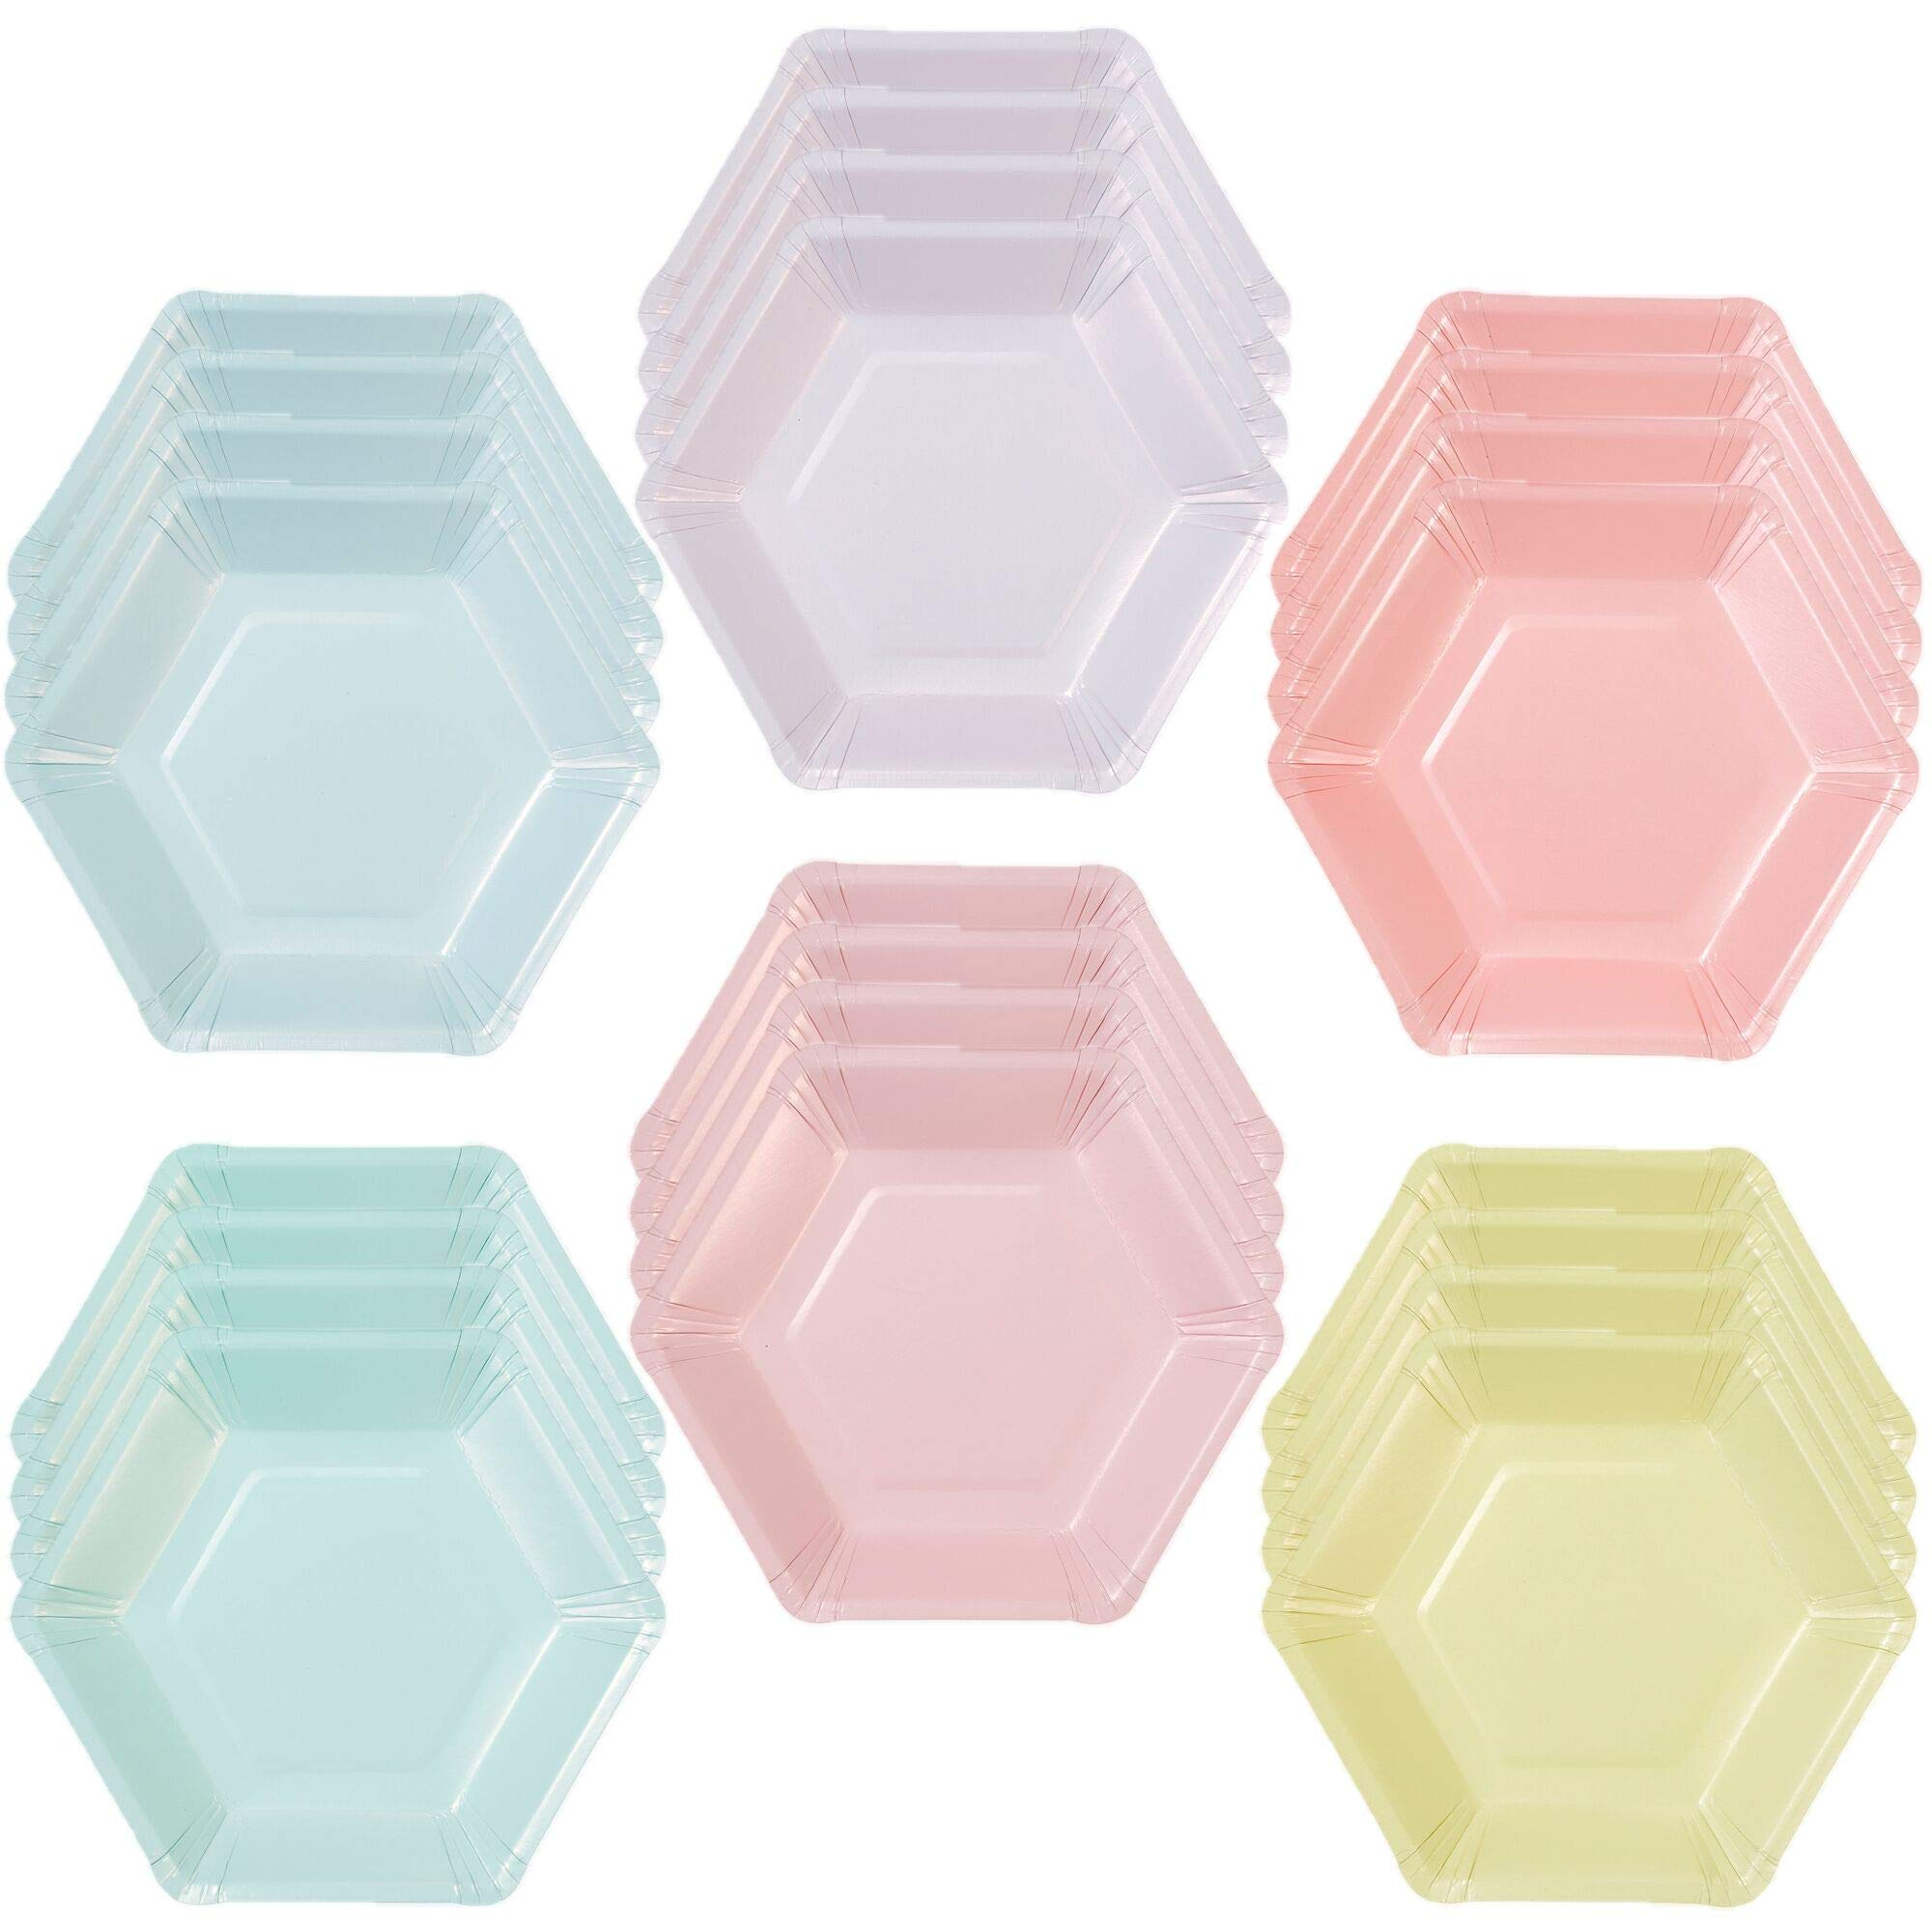 Talking Tables We Heart Pastel Small Multi Pastel Color Hexagonal Matte Paper Plates (6 Designs) for a Birthday Party or Celebration, Multicolor (24 Pack) by Talking Tables